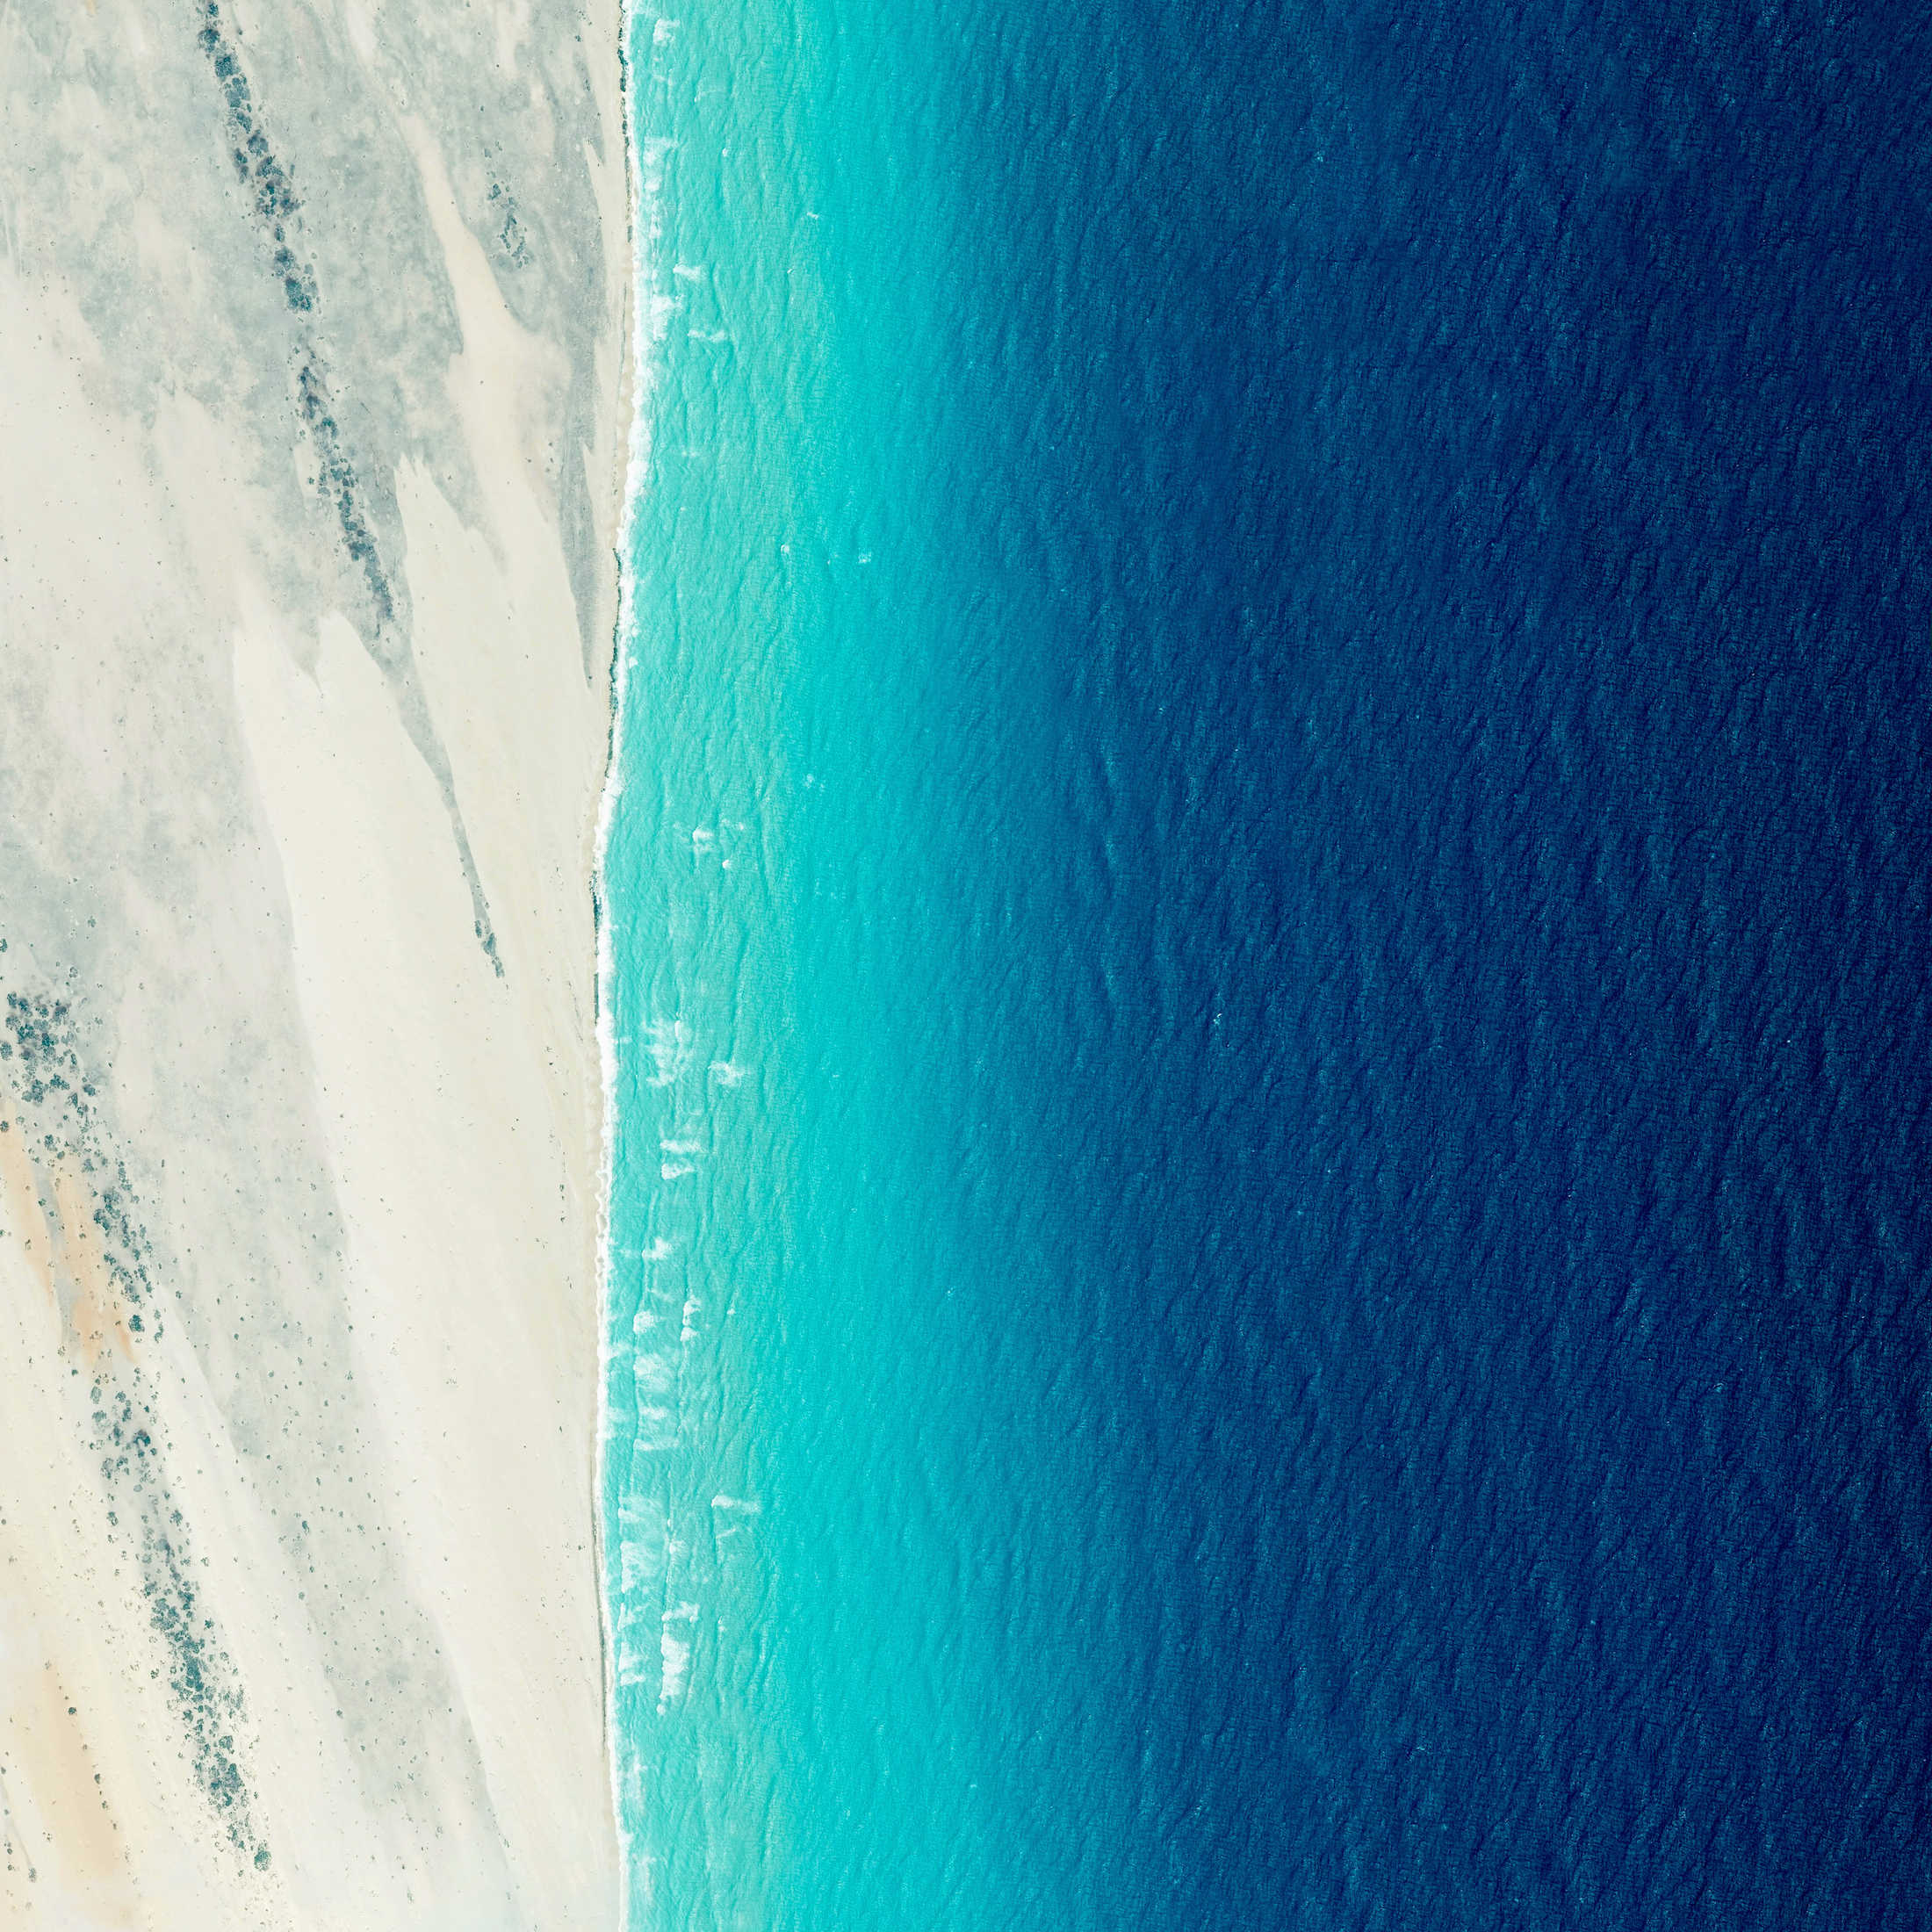 6/9/2016  Coastline  El Hur, Somalia  5°00′N 48°16′E    Waves roll into the shores of Somalia, by the village of El Hur. Located on the Horn of Africa, Somalia has the longest coastline on the mainland continent, stretching for more than 3,000 kilometers (1880 miles).